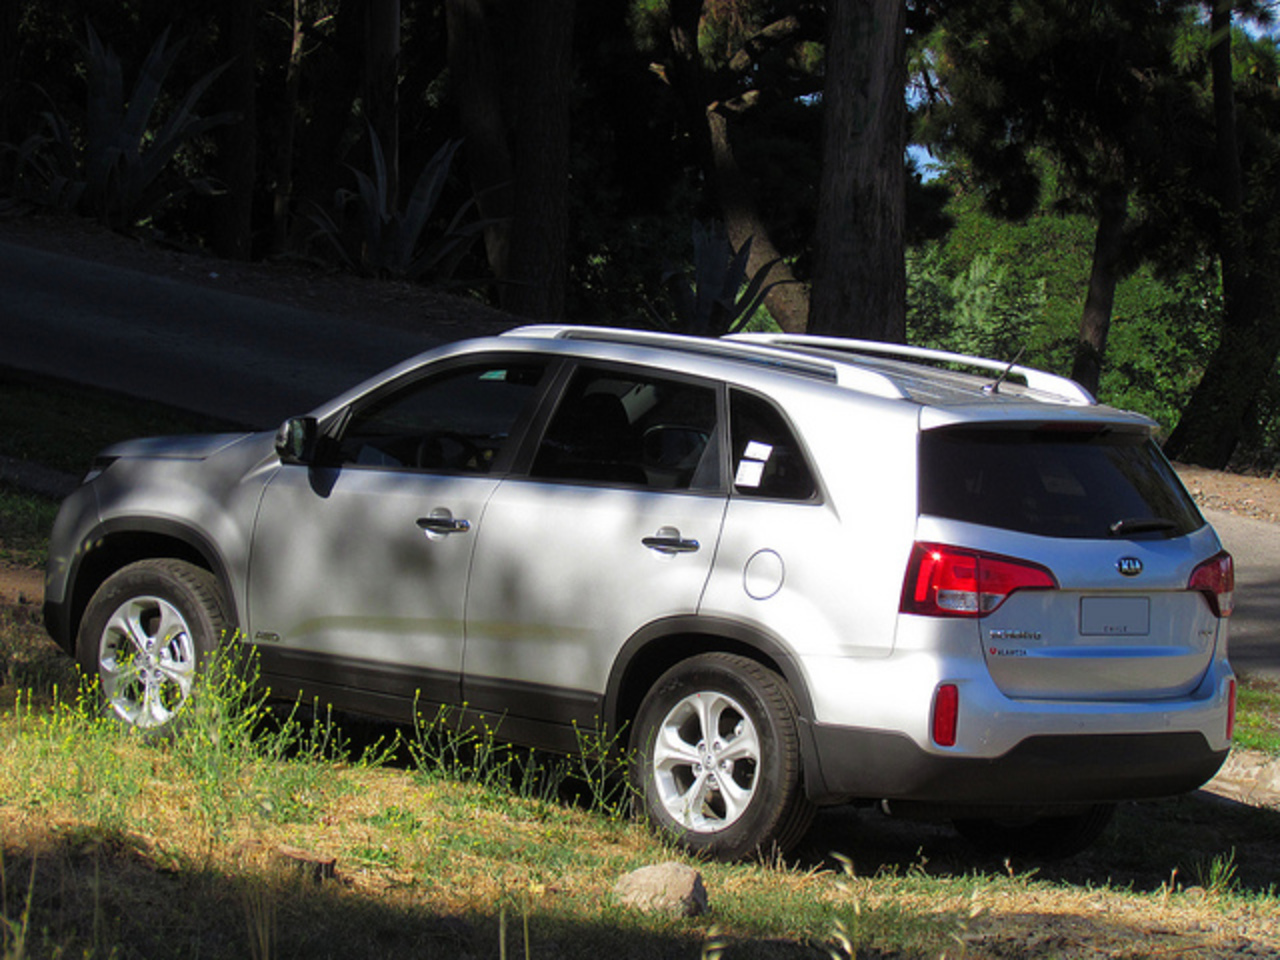 Kia Sorento EX 2.2 CRDi AWD 2013 | Flickr - Photo Sharing!